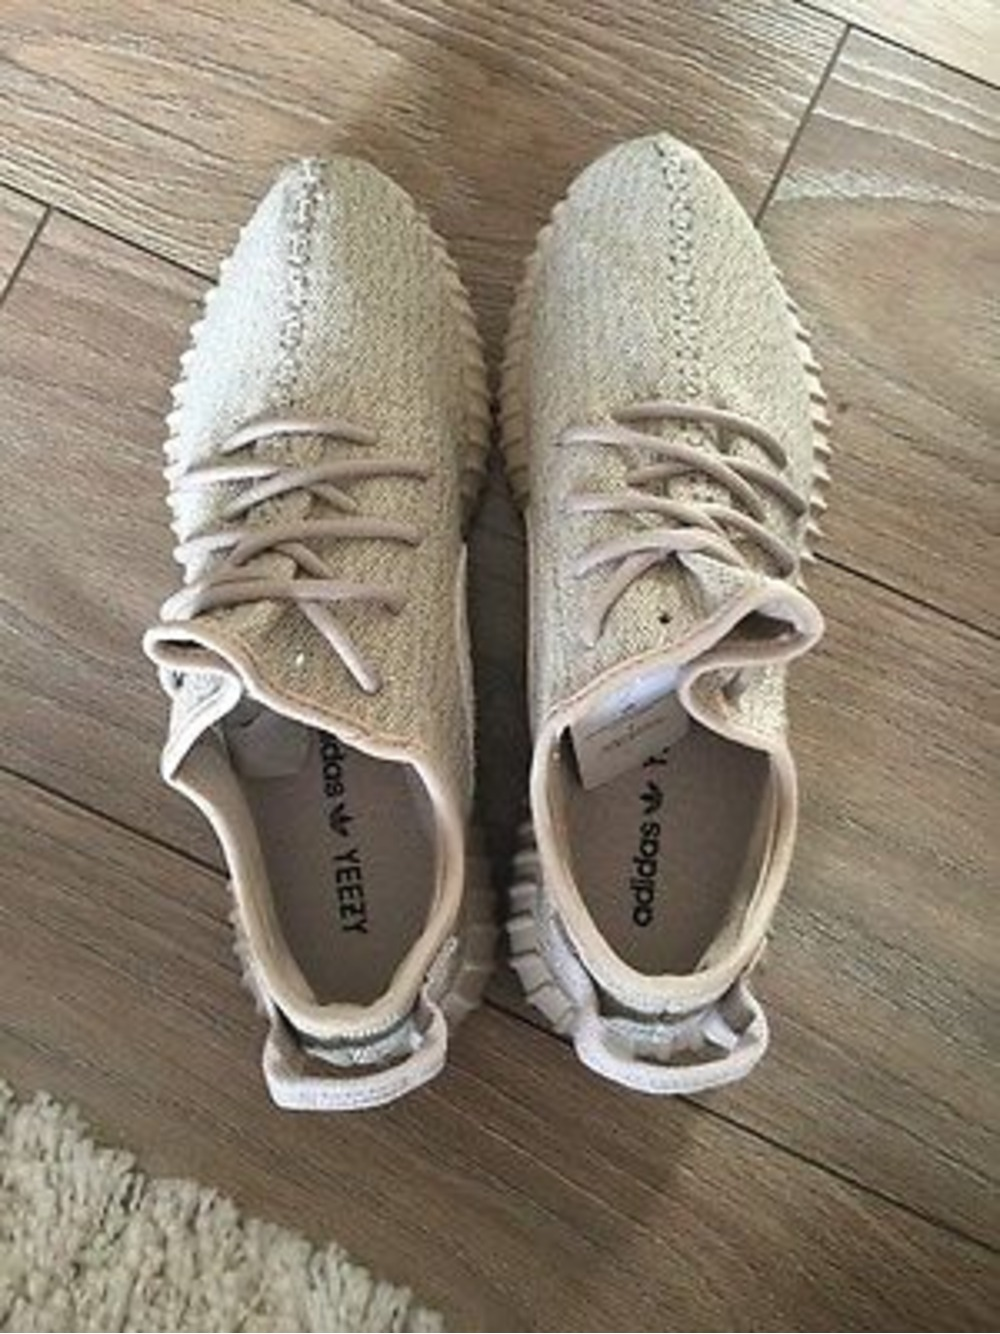 Cheap Adidas Yeezy 350 Boost Sale